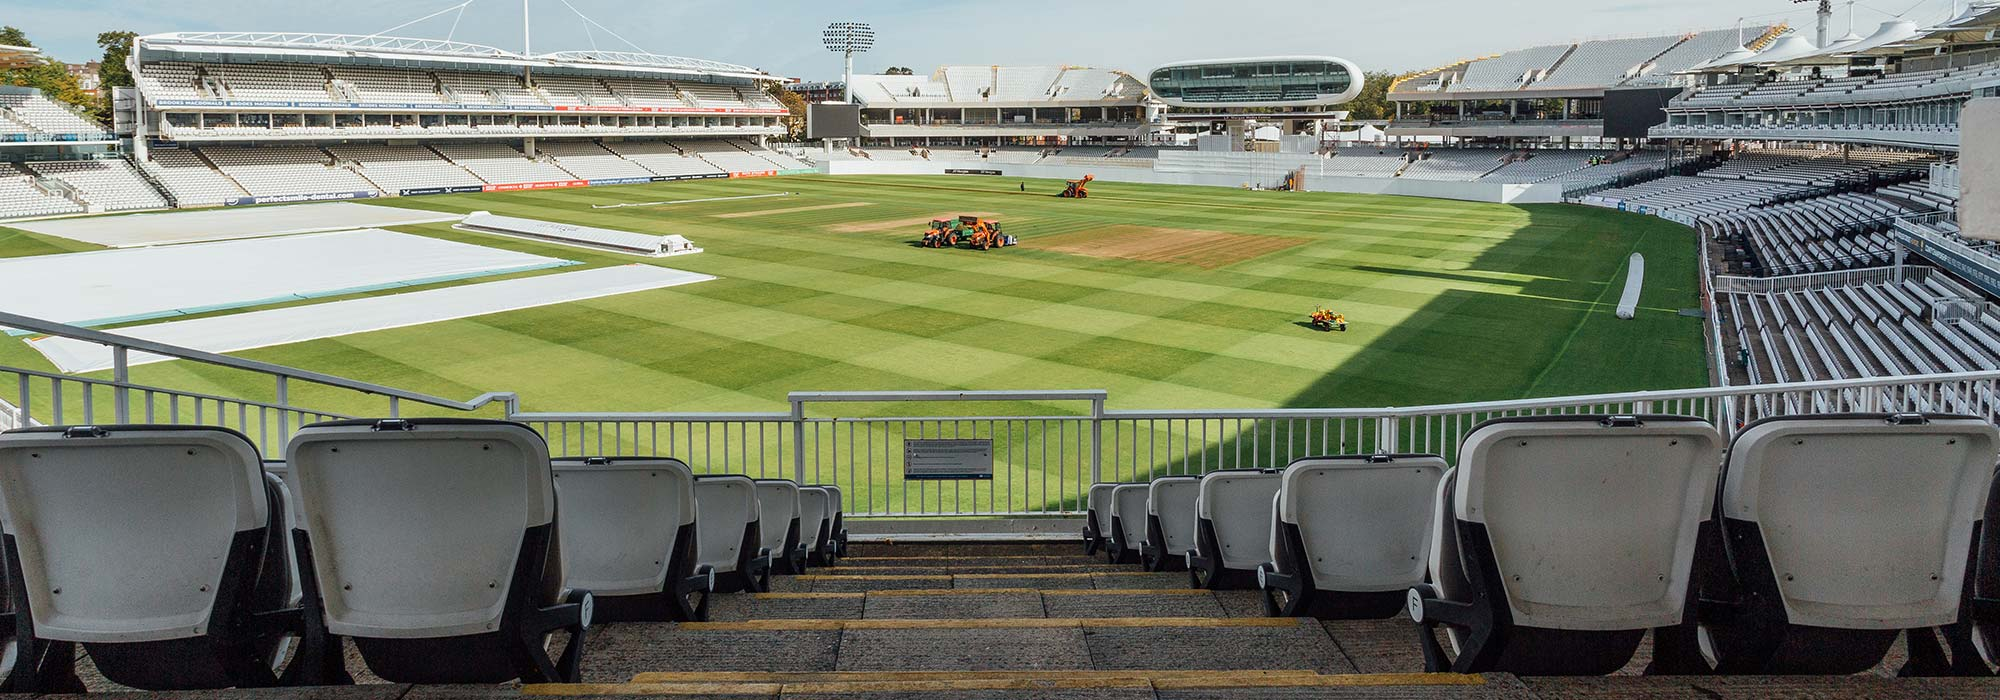 Cricket Pitches, Wickets and Squares Photo